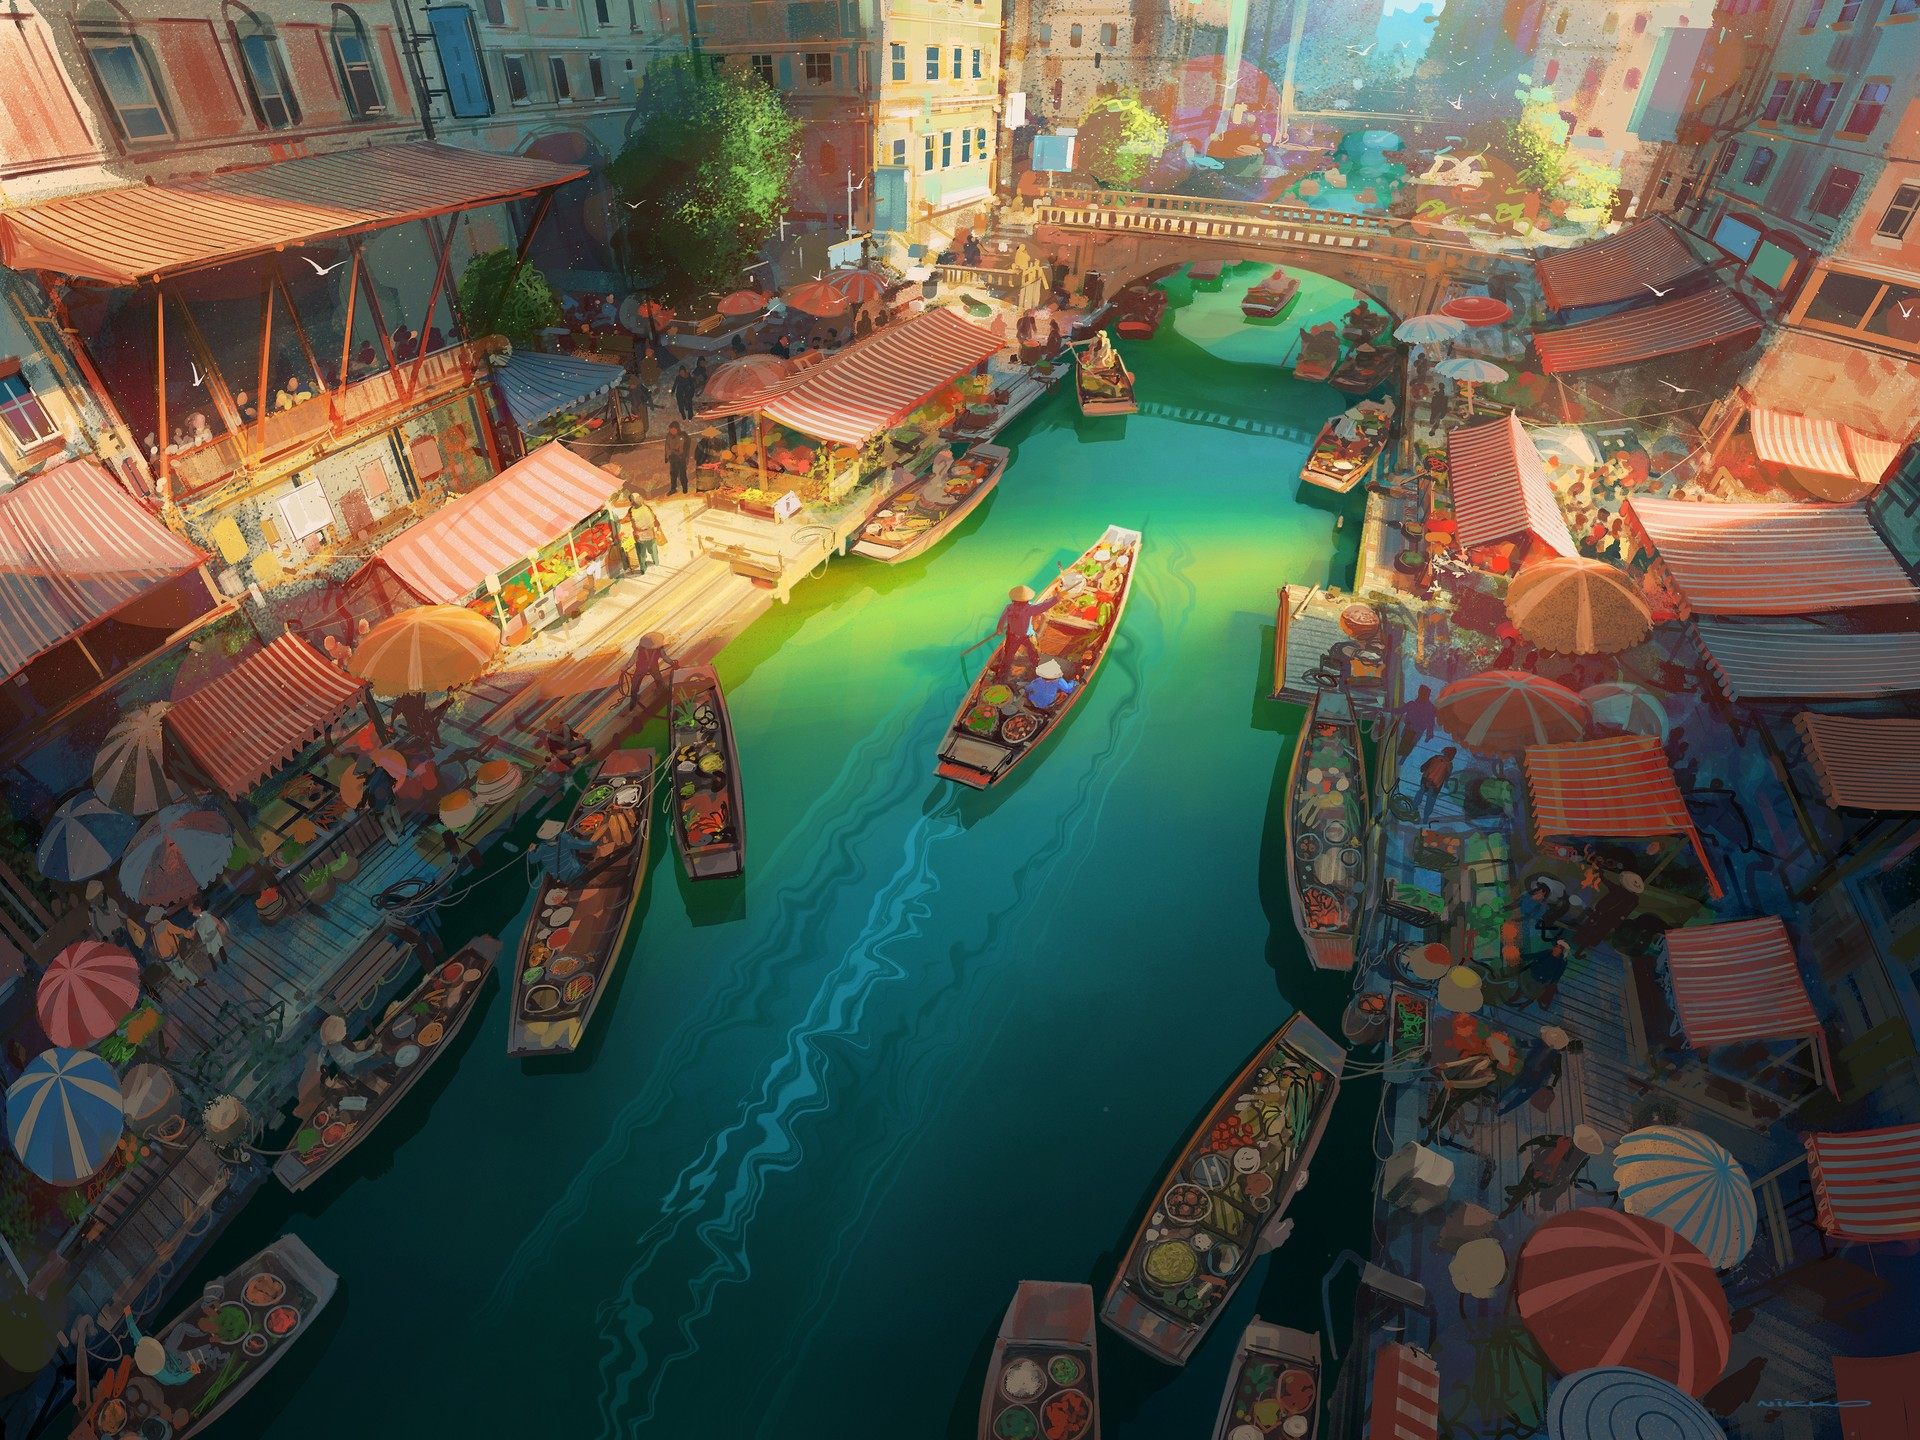 General 1920x1440 Nikolai Lockertsen artwork digital art 2D markets river canoes environment city bridge illustration building people painting birds cityscape top view aerial view colorful